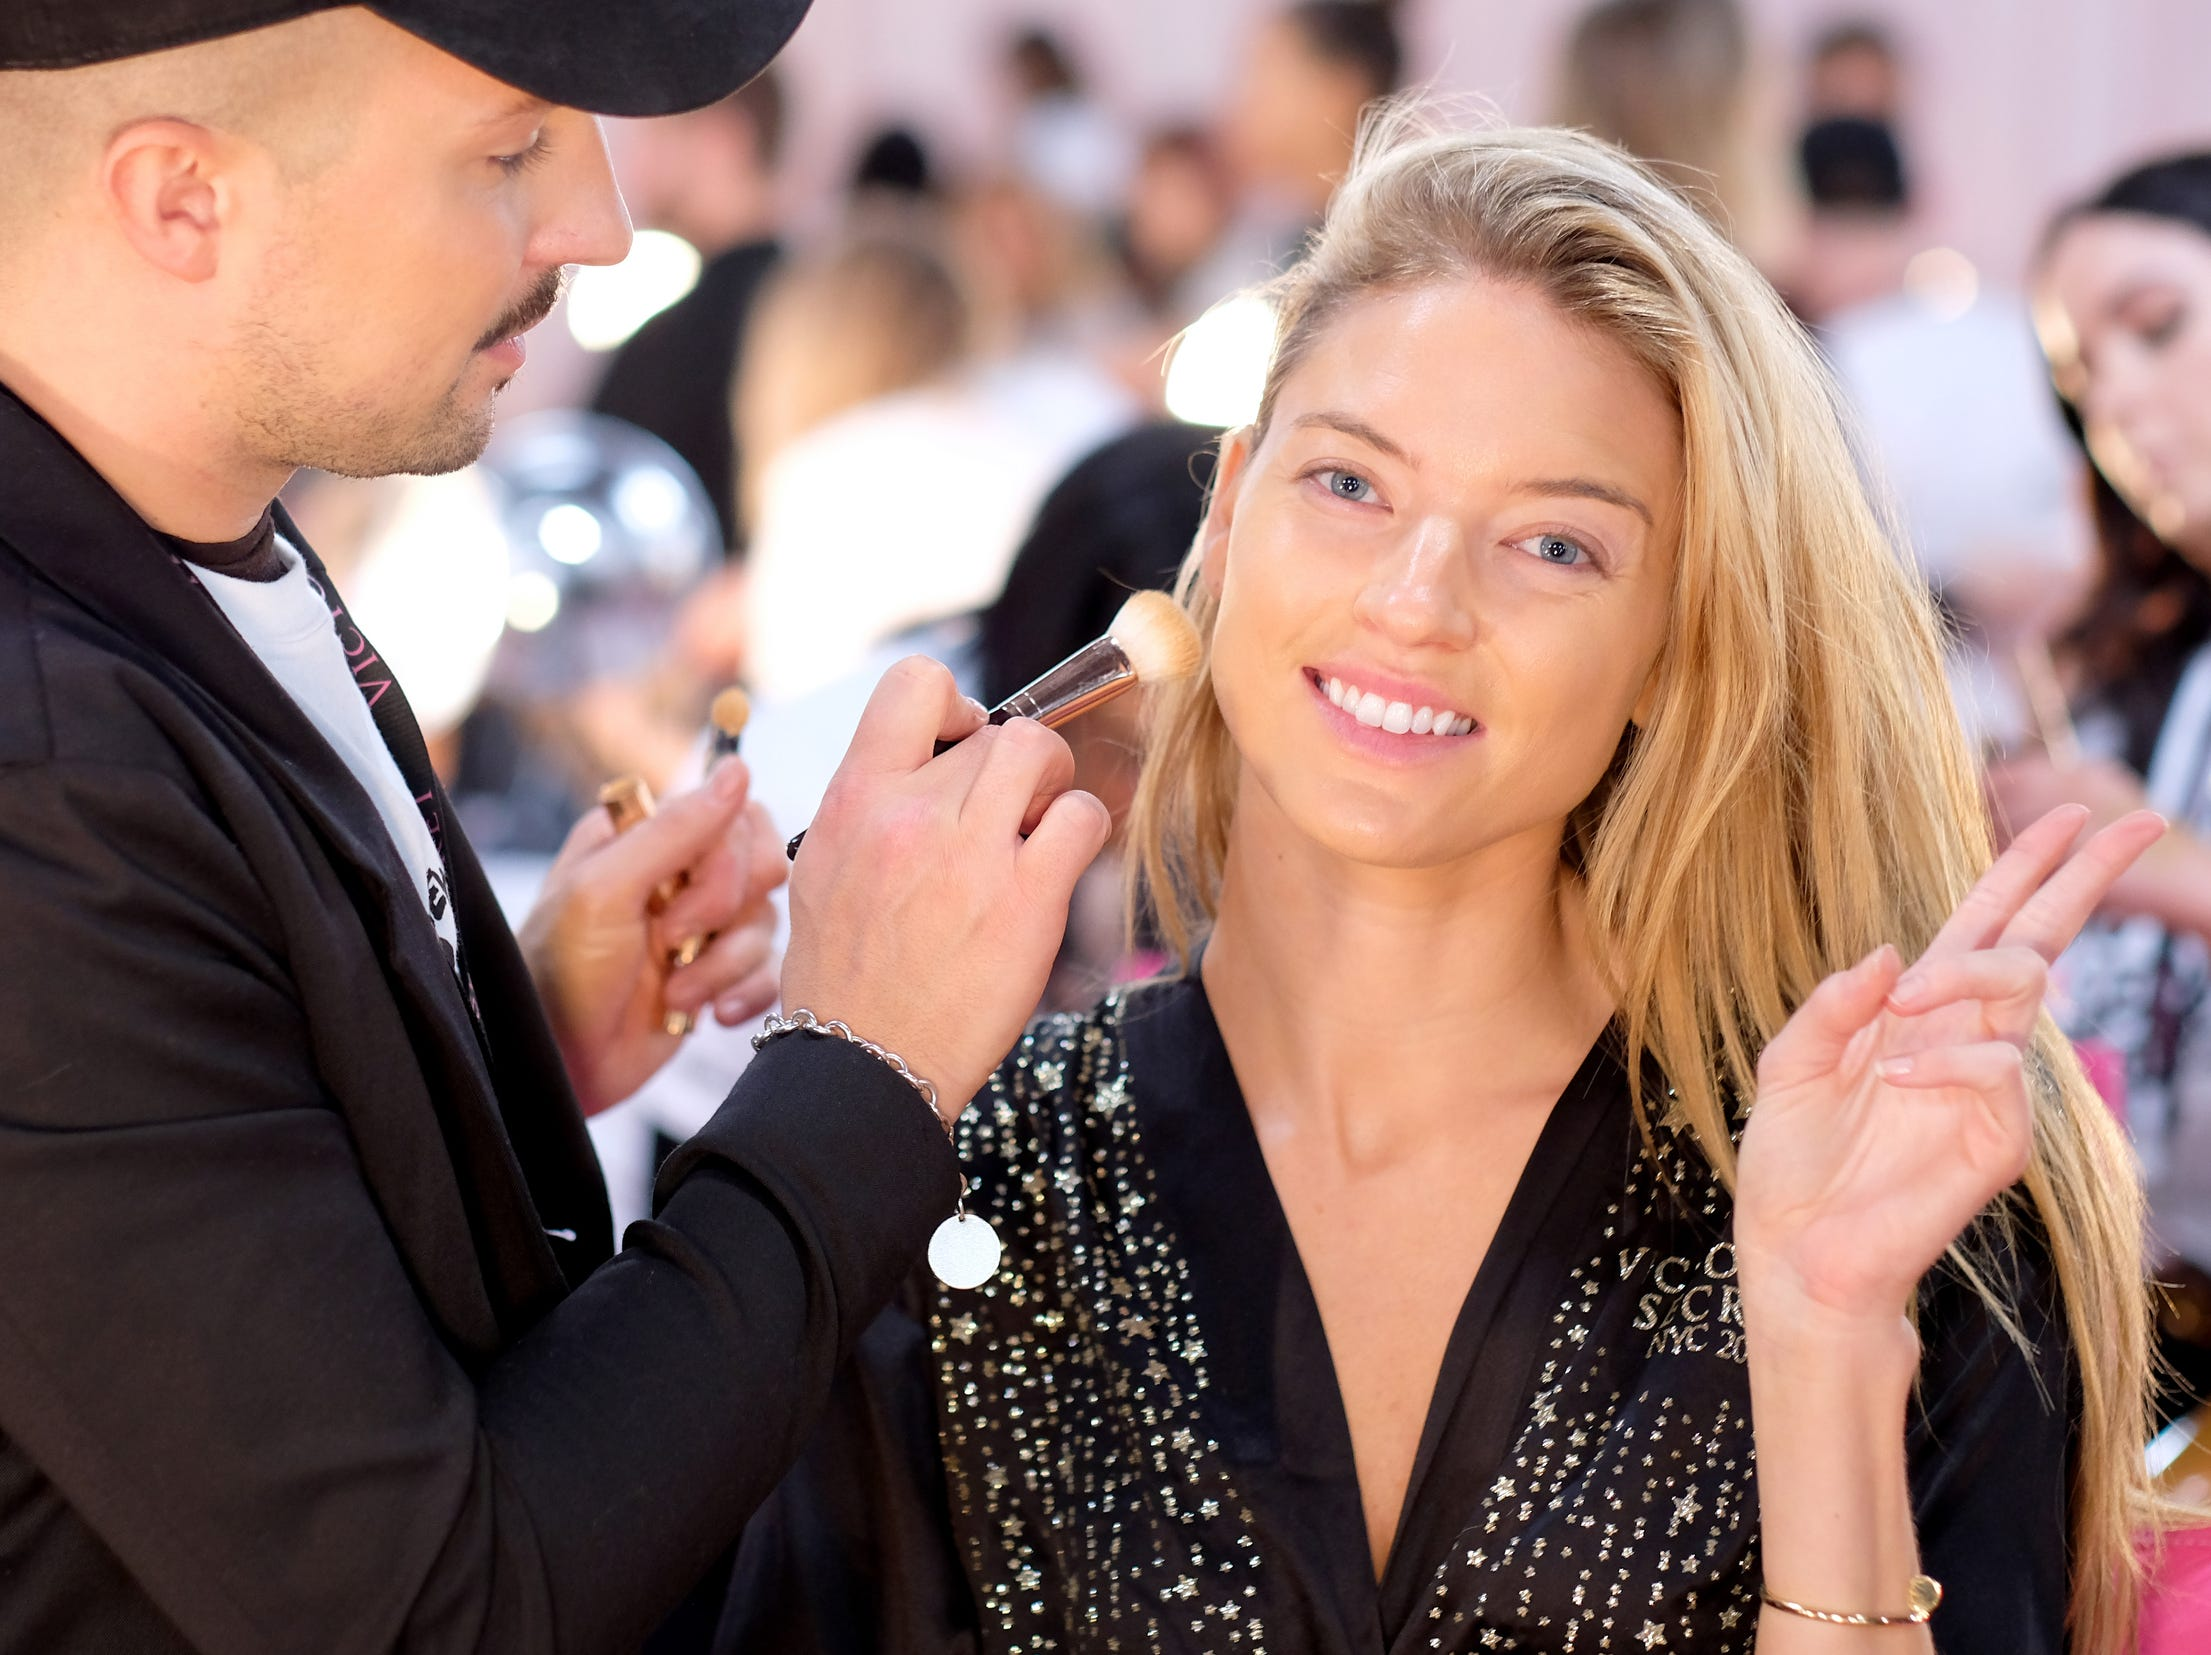 It's make-up time for Angel Martha Hunt.